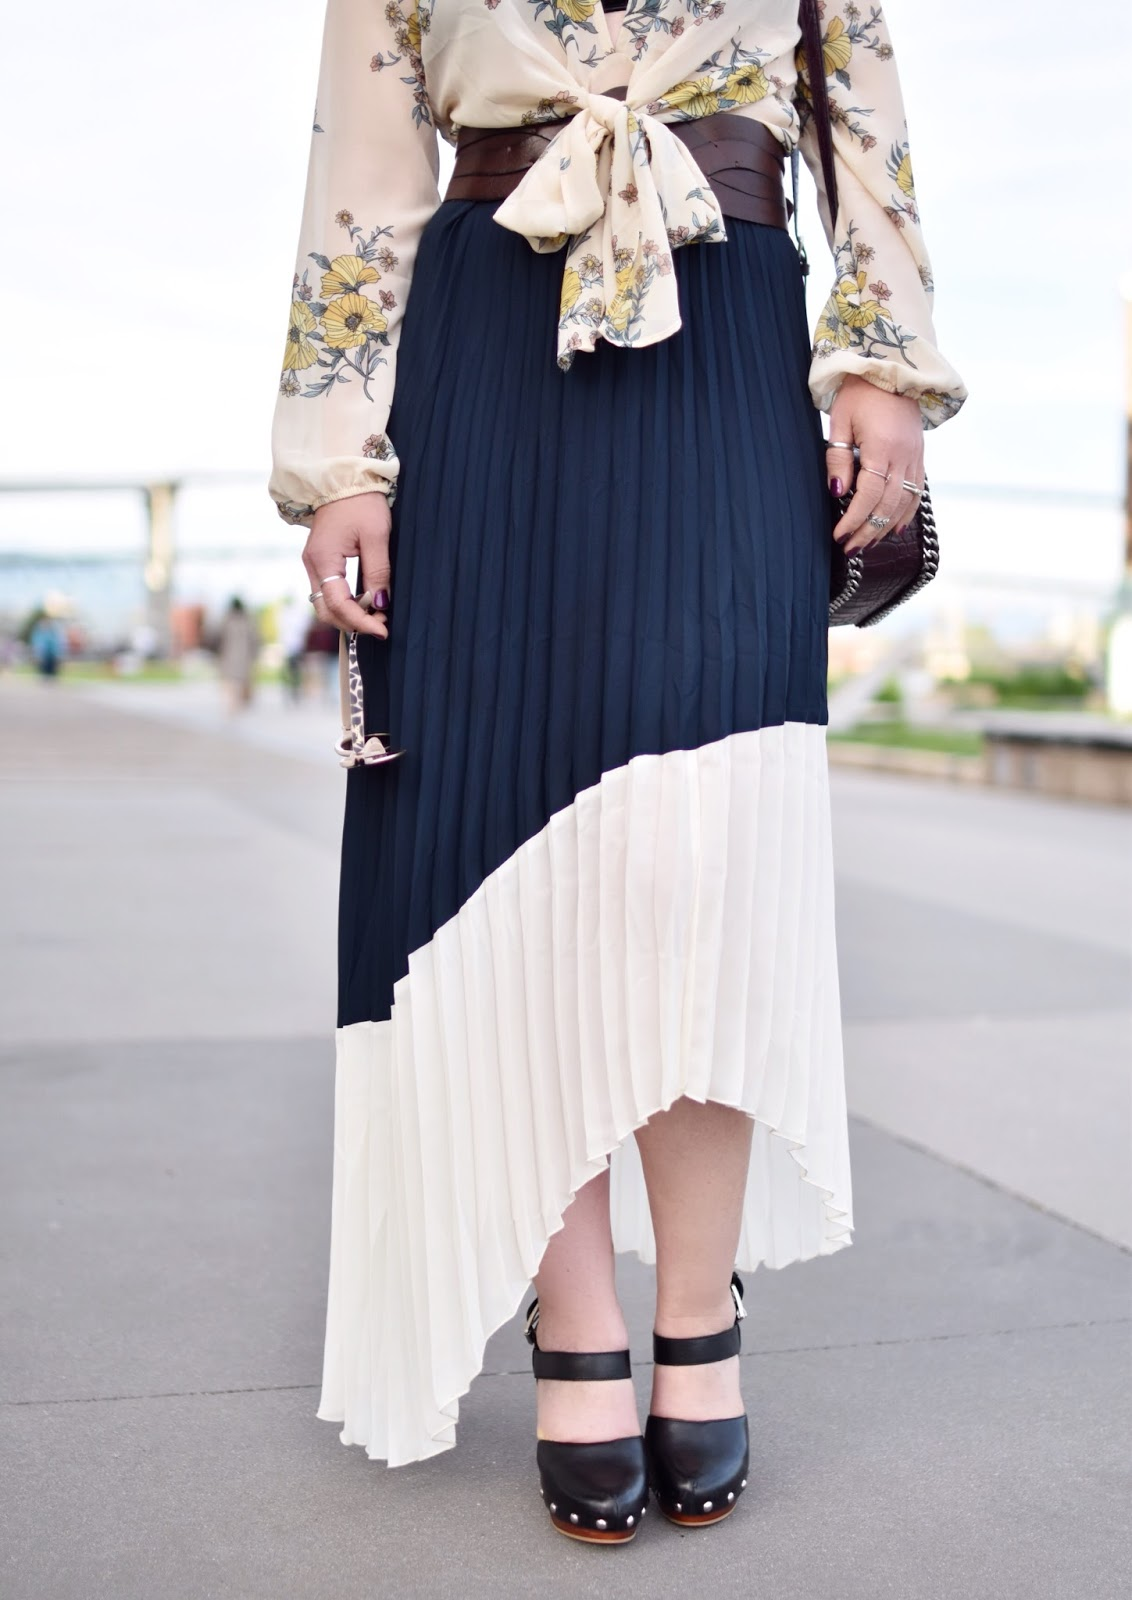 Monika Faulkner outfit inspiration - pleated maxi skirt, floral bow-front blouse, corset belt, and platform mary-jane shoes